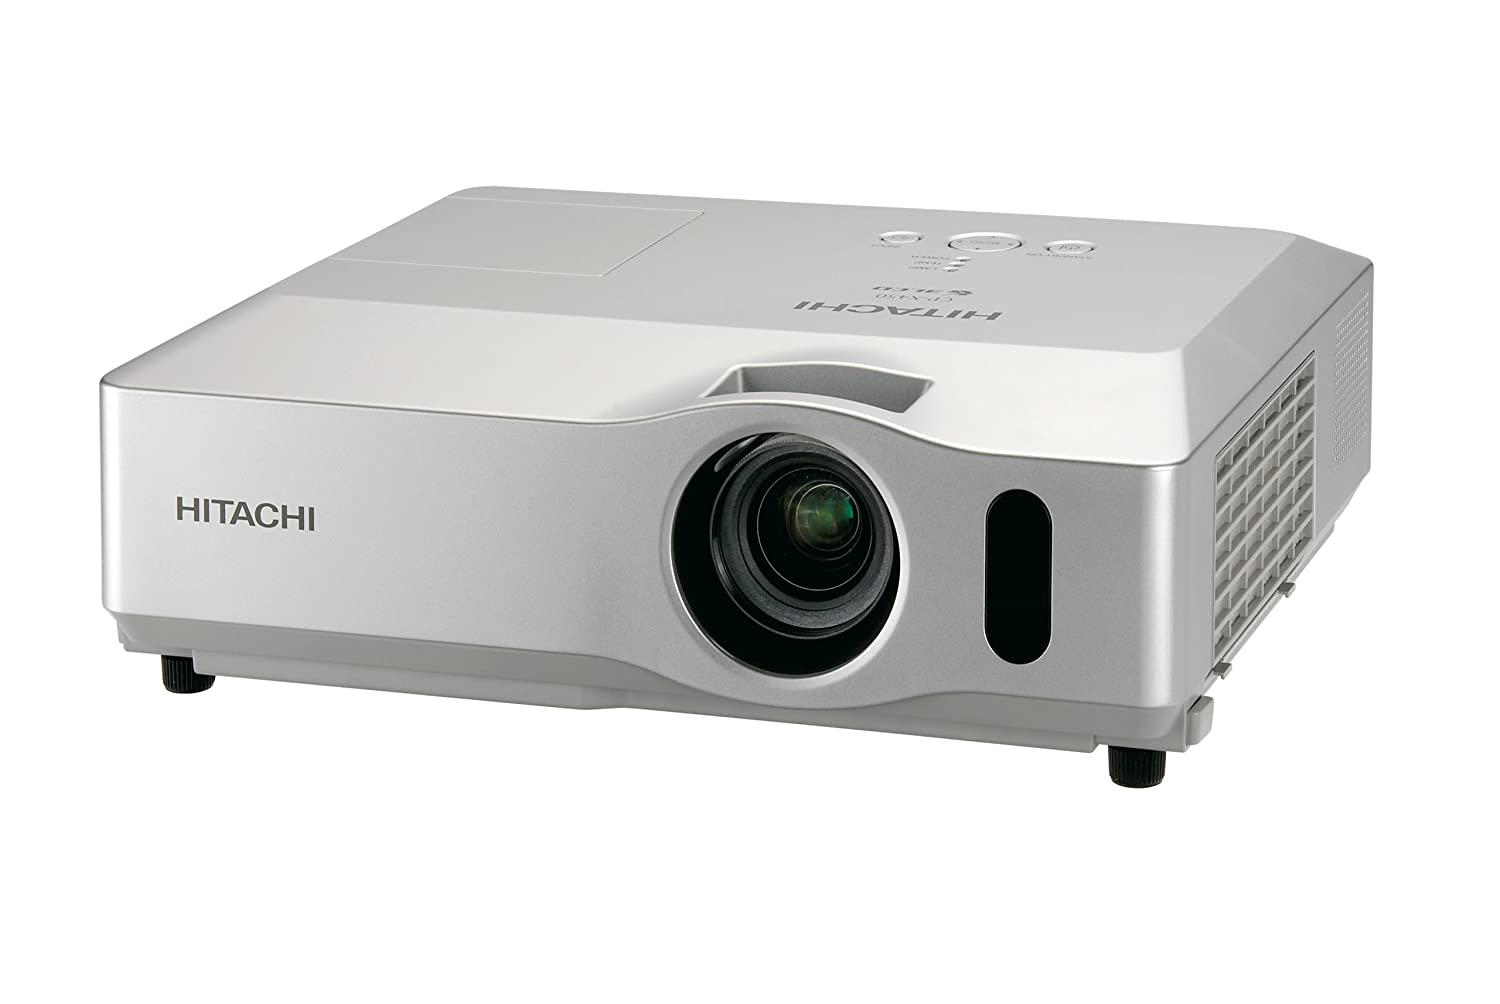 Amazon.com: Hitachi CP-X450 1024 x 768 LCD proyector 3.500 ...